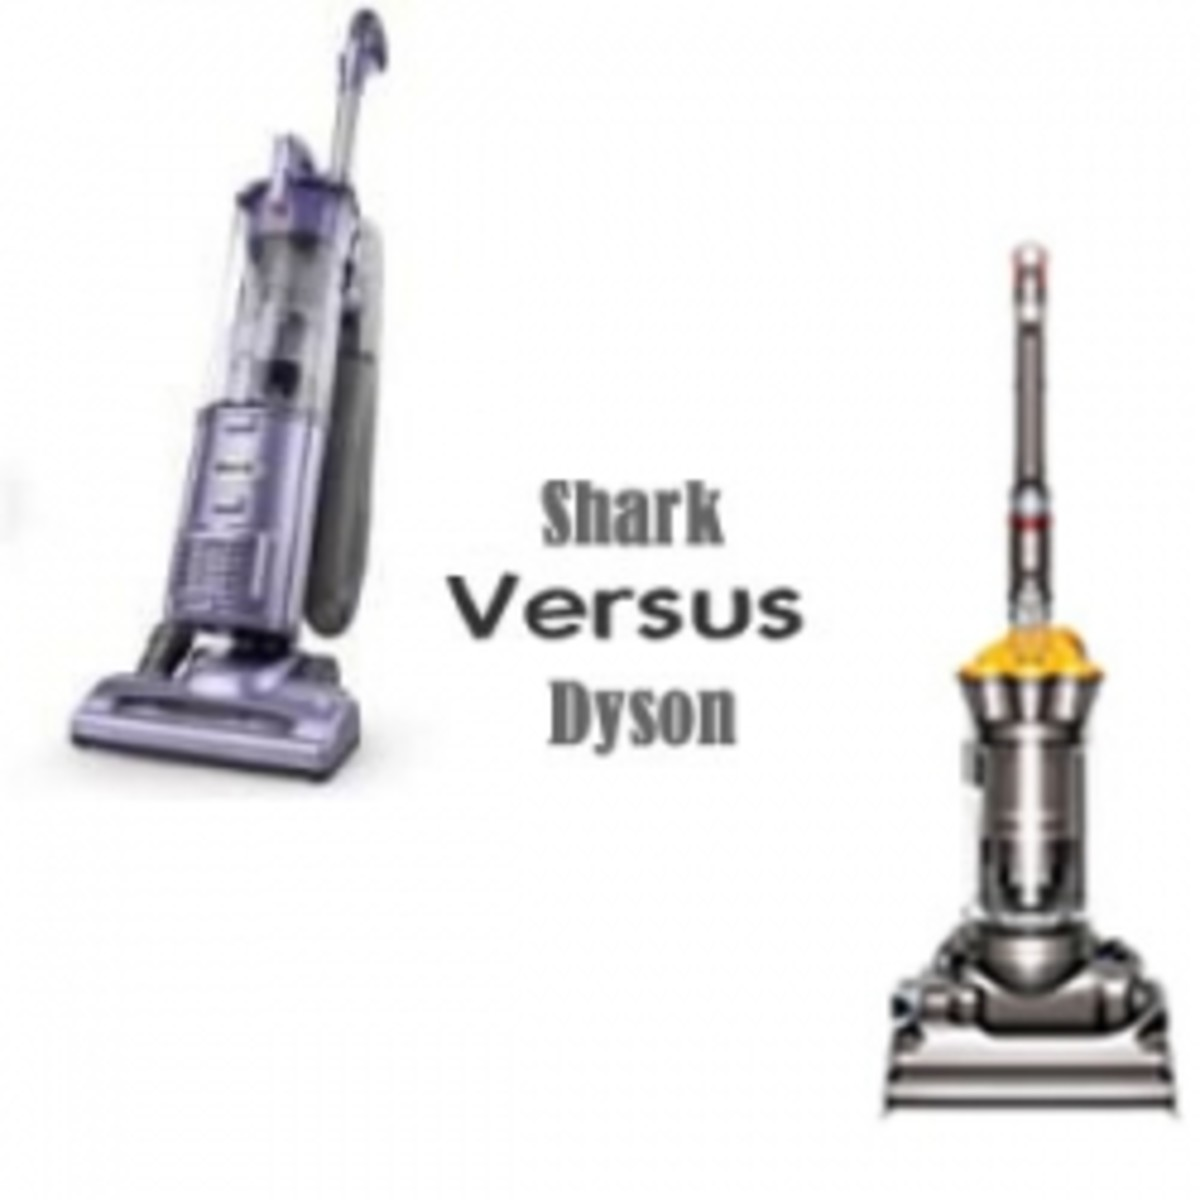 Comparing Shark Vs Dyson Vacuum Cleaners - an In-Depth Review